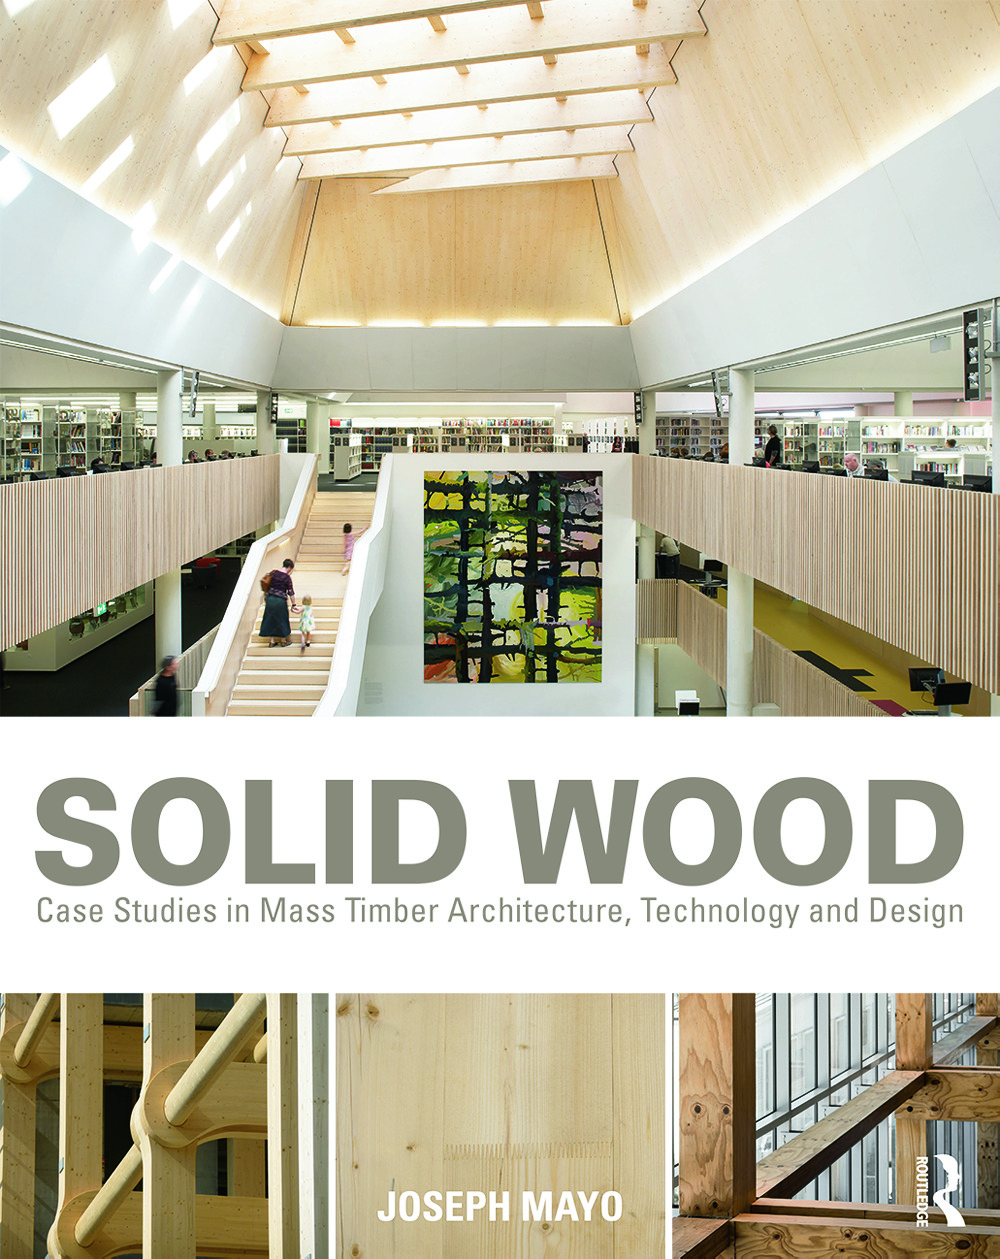 Solid Wood: Case Studies in Mass Timber Architecture, Technology and Design book cover